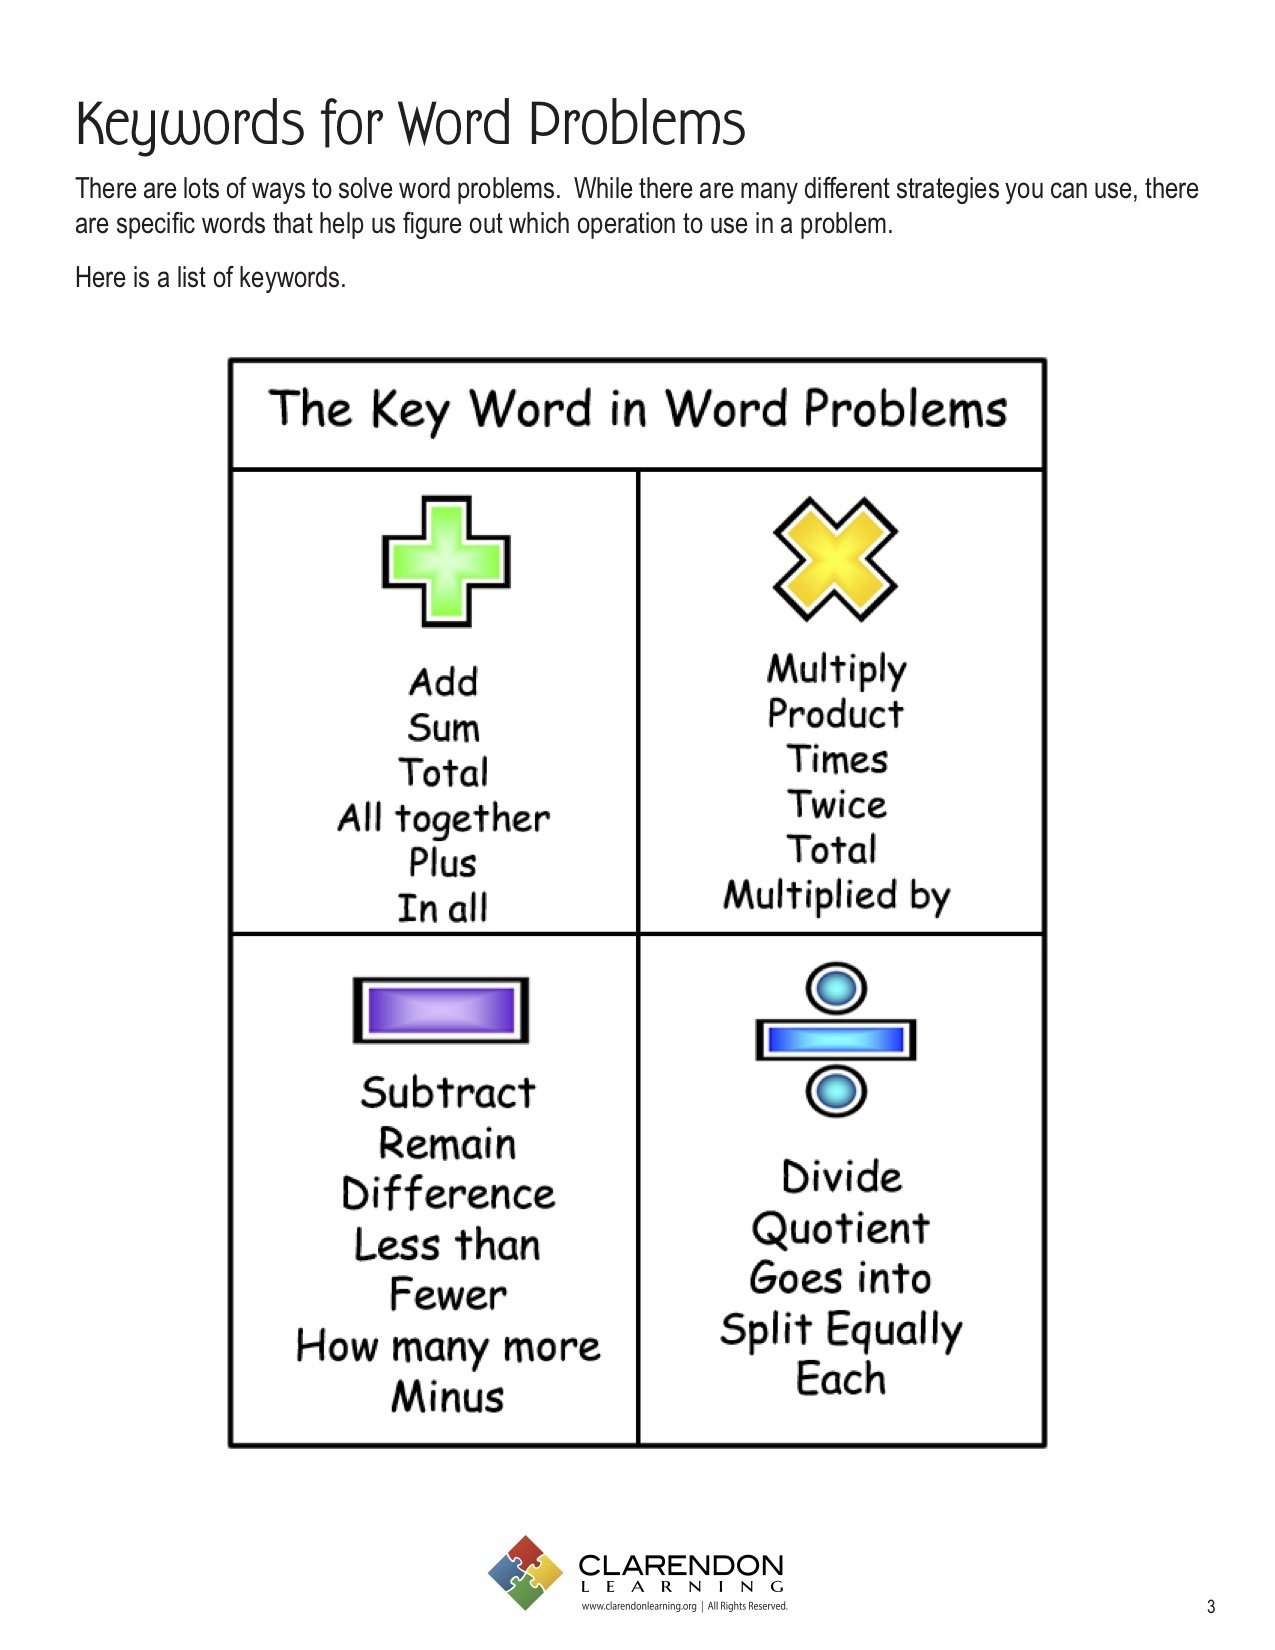 Keywords for Word Problems Lesson Plan | Clarendon Learning